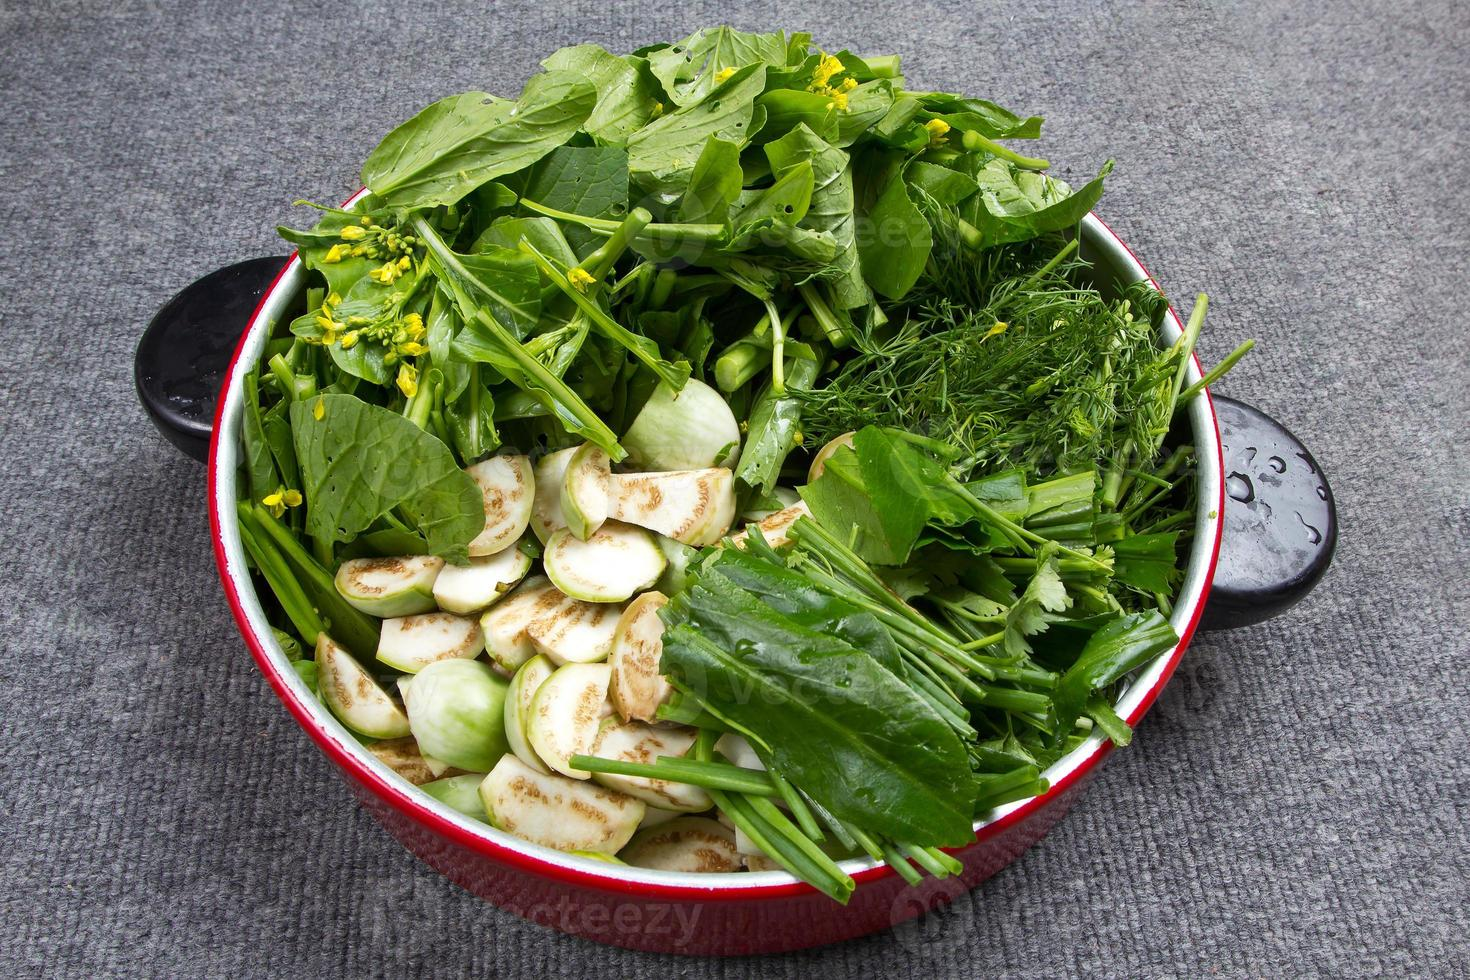 Green vegetables sliced for cooking photo